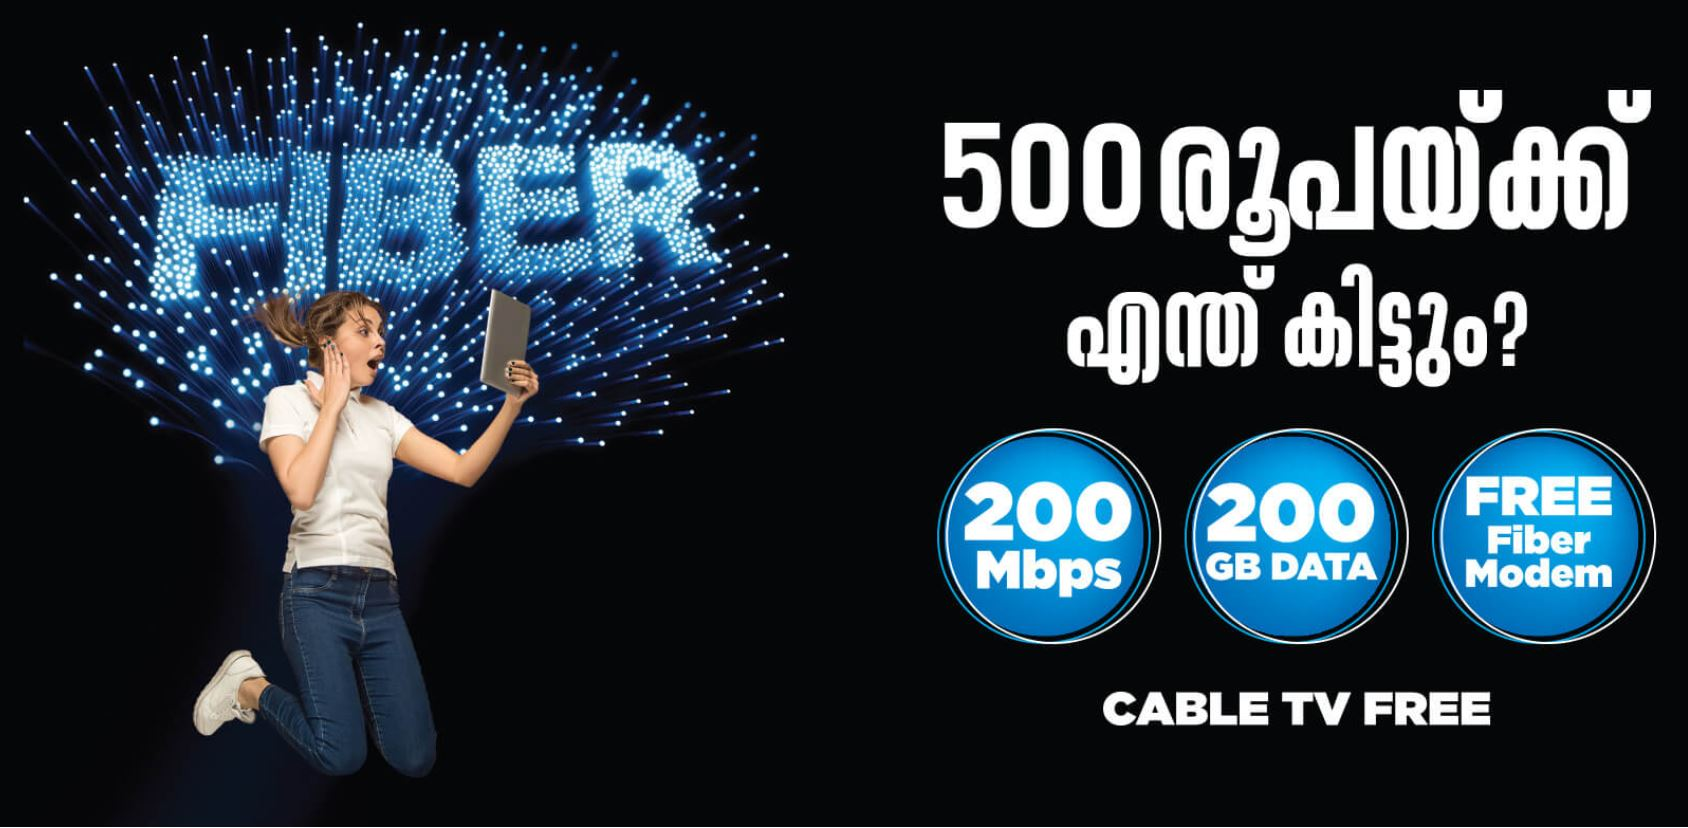 Reliance Jio GigaFiber to offer free cable TV + broadband at Rs 500/month